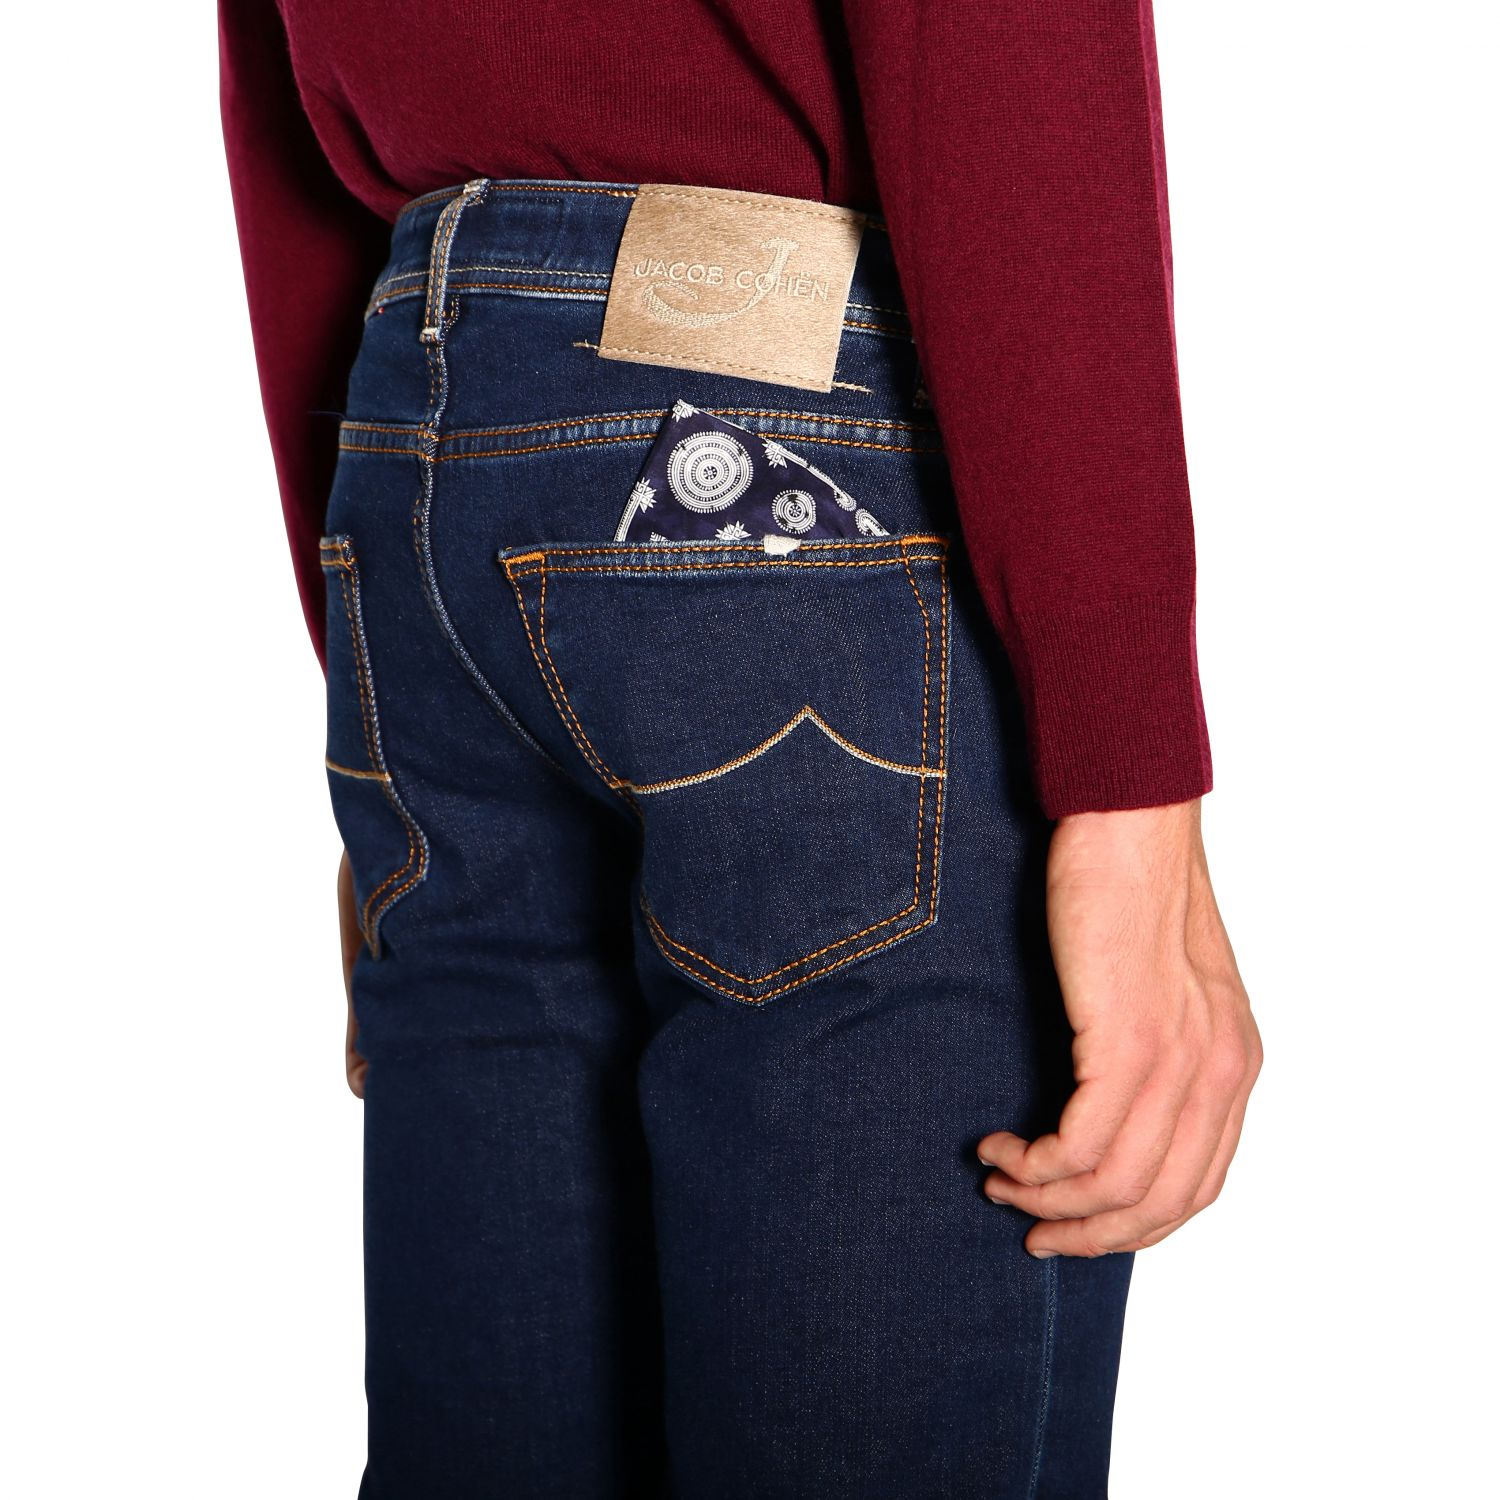 Jeans men Jacob Cohen denim 5